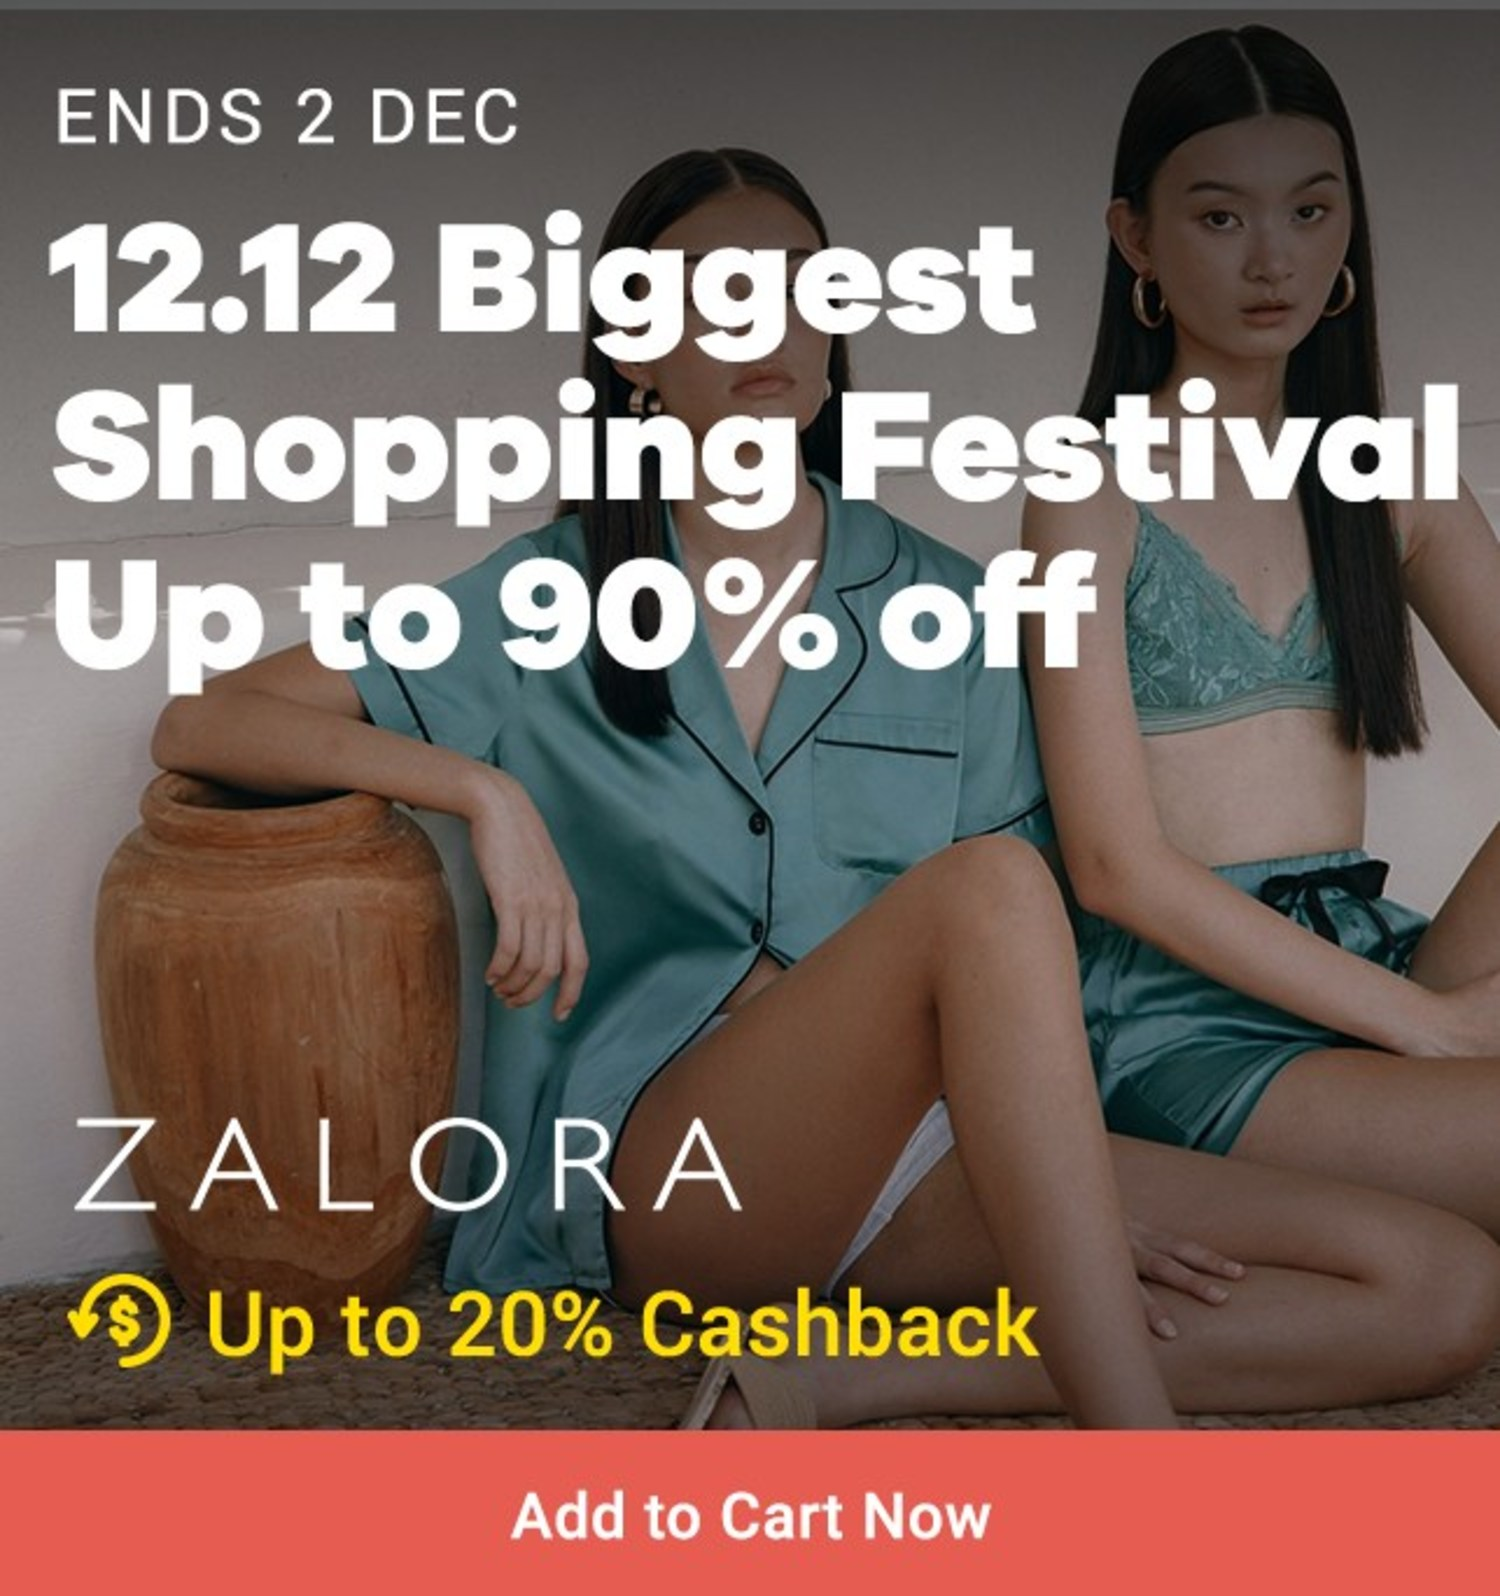 ZALORA: Pre 12.12 Sale Up to 90% off